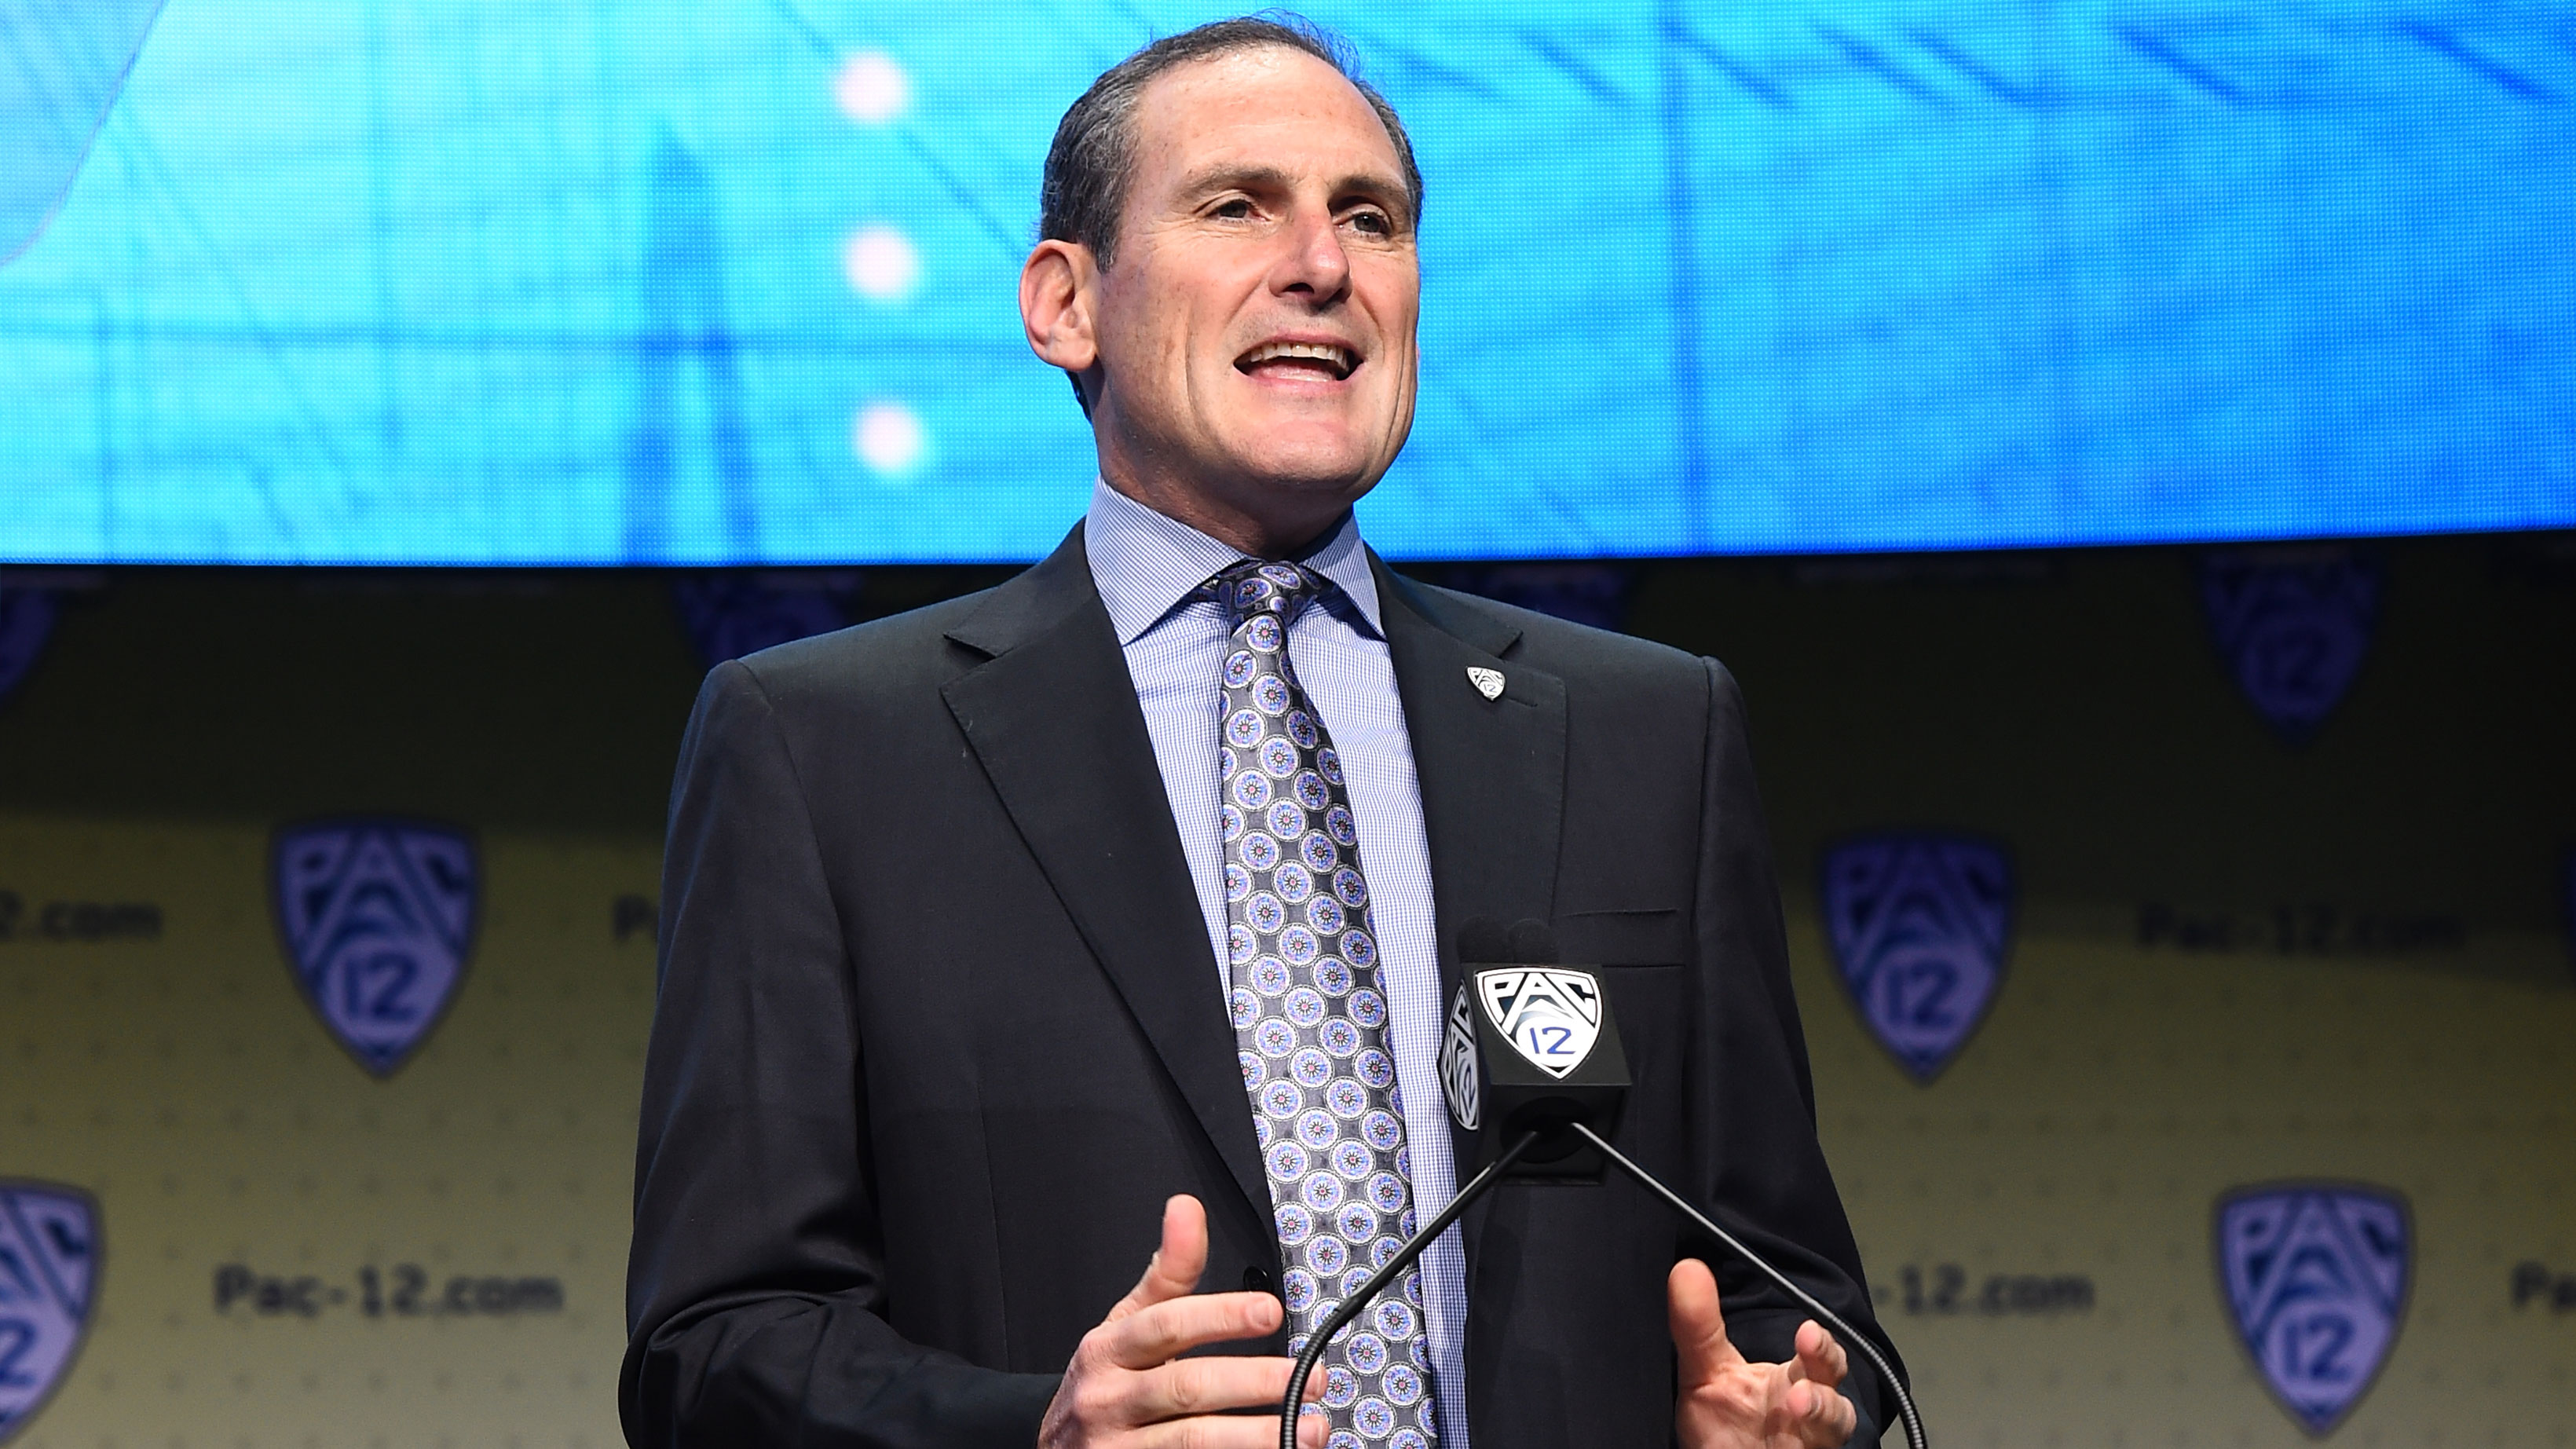 2017 05 kickoff time for national championship game - 2017 Pac 12 Football Media Days Larry Scott Announces Title Game To Stay At Levi S Stadium Through At Least 2019